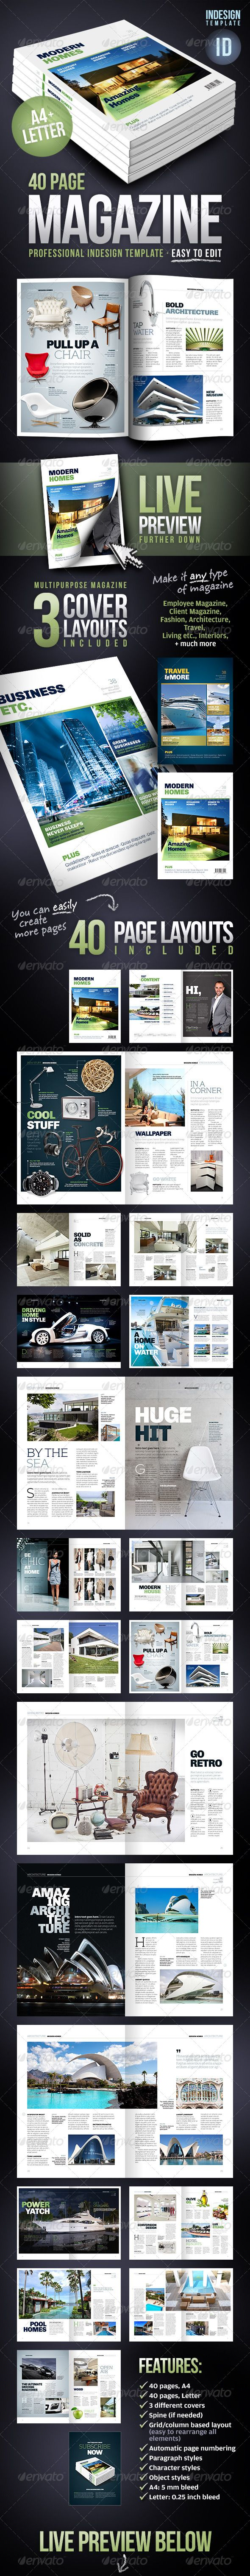 Multipurpose 40 Page Magazine - A4 + Letter - Magazines Print Templates